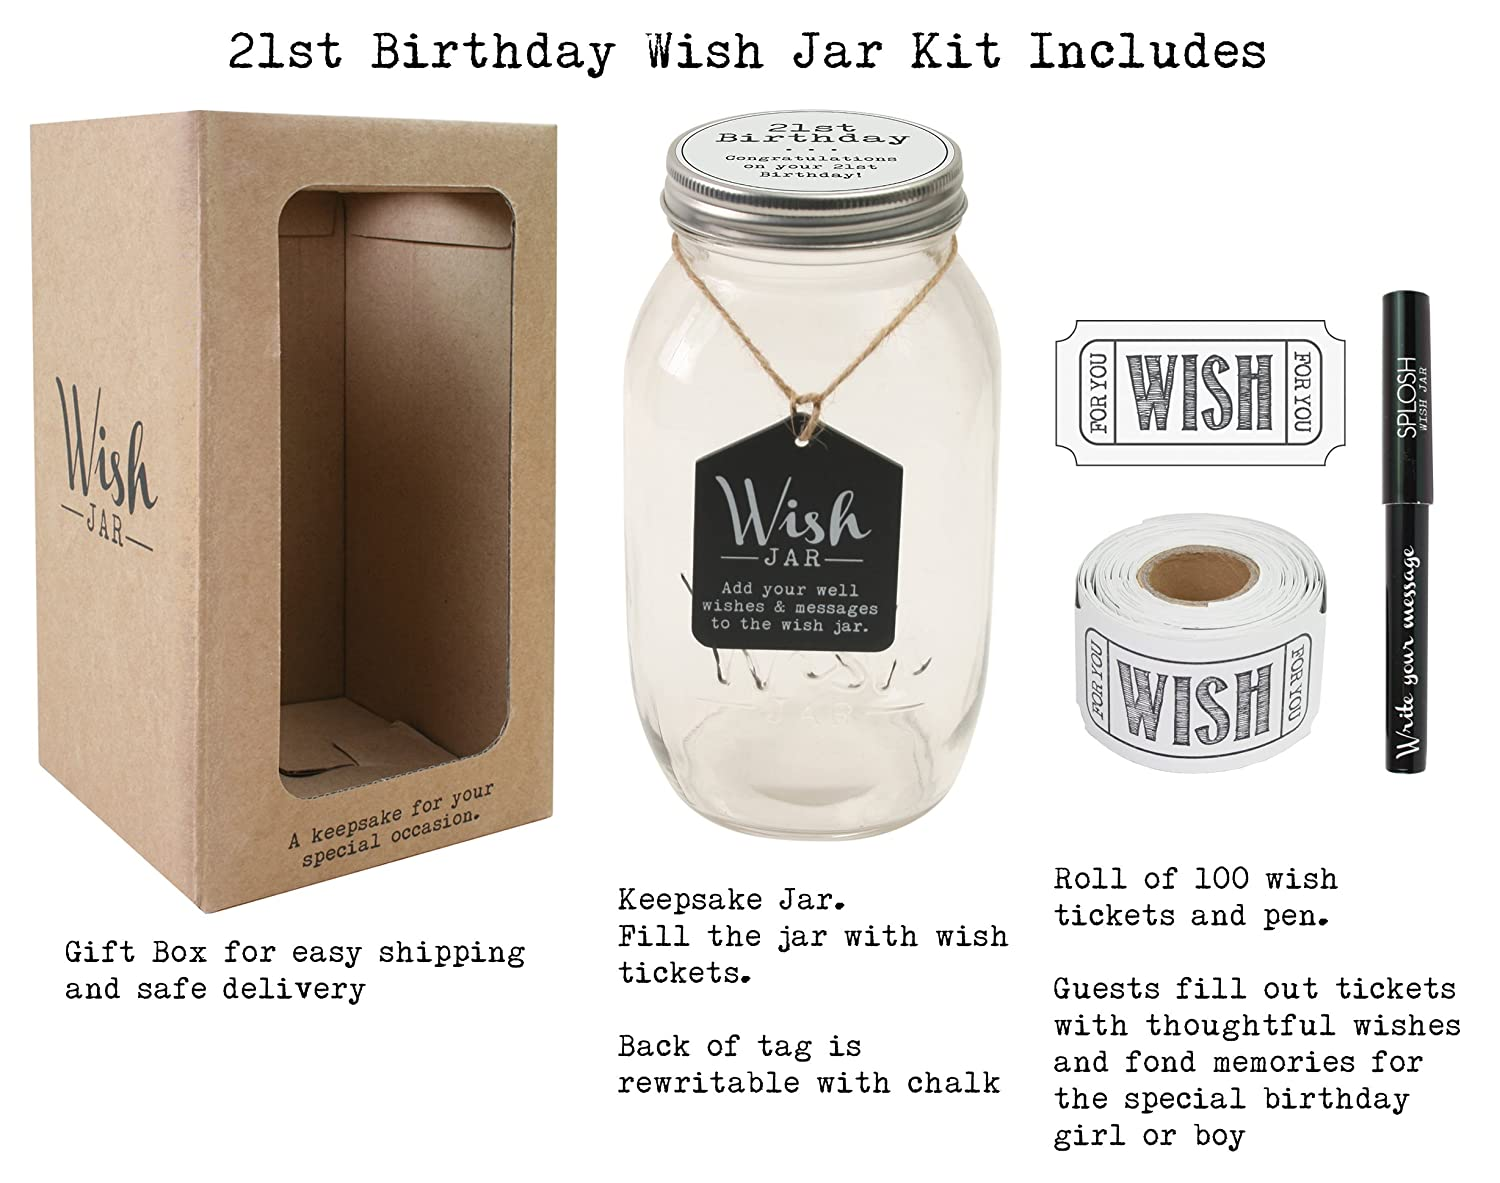 Sister and Brother ; Memorable Gifts for Men and Women ; Kit Comes with 100 Tickets and Decorative Lid Top Shelf 21st Birthday Wish Jar ; Unique Gift Ideas for Daughter Son